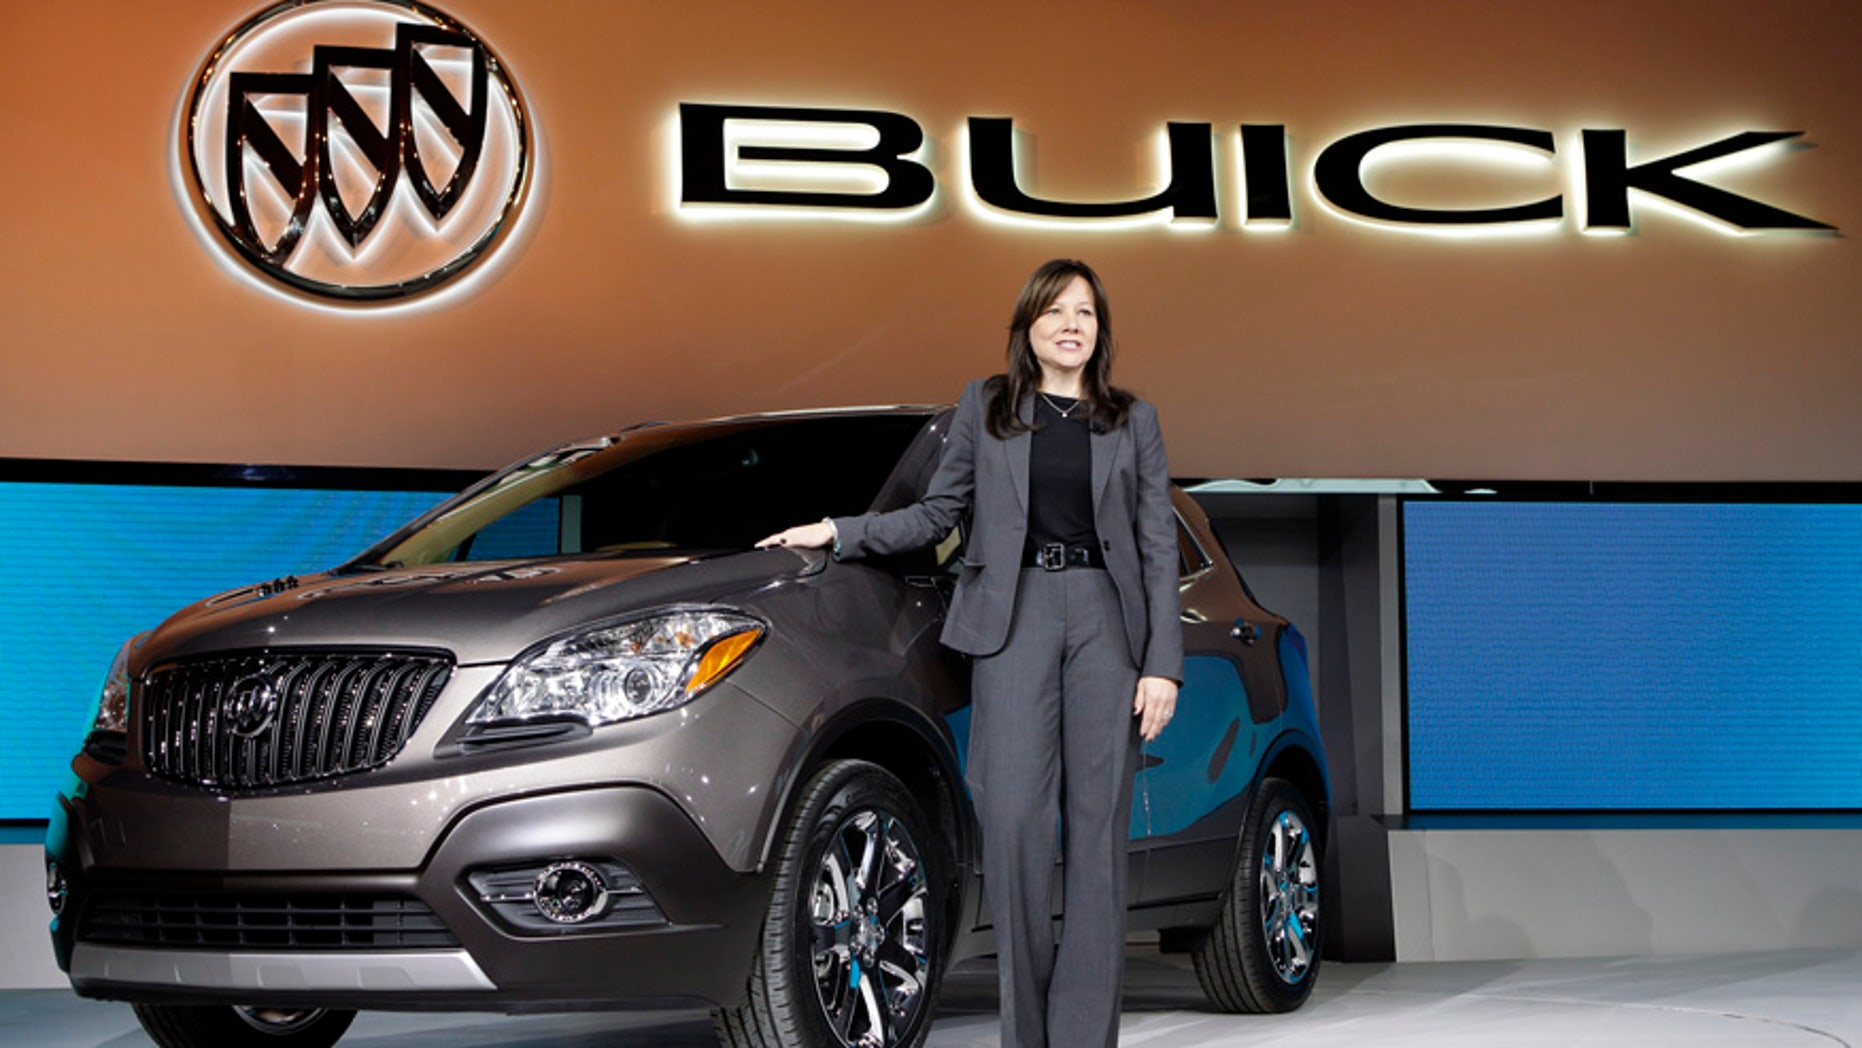 FILE - In this Jan. 10, 2012 file photo, Mary Barra, then General Motors Senior Vice President, Global Product Development, introduces the 2013 Buick Encore at the North American International Auto Show in Detroit. Buick, the brand that once was the pace car for the drive to the senior center, has made a comeback by appealing to buyers not yet ready for retirement. (AP Photo/Paul Sancya, File)